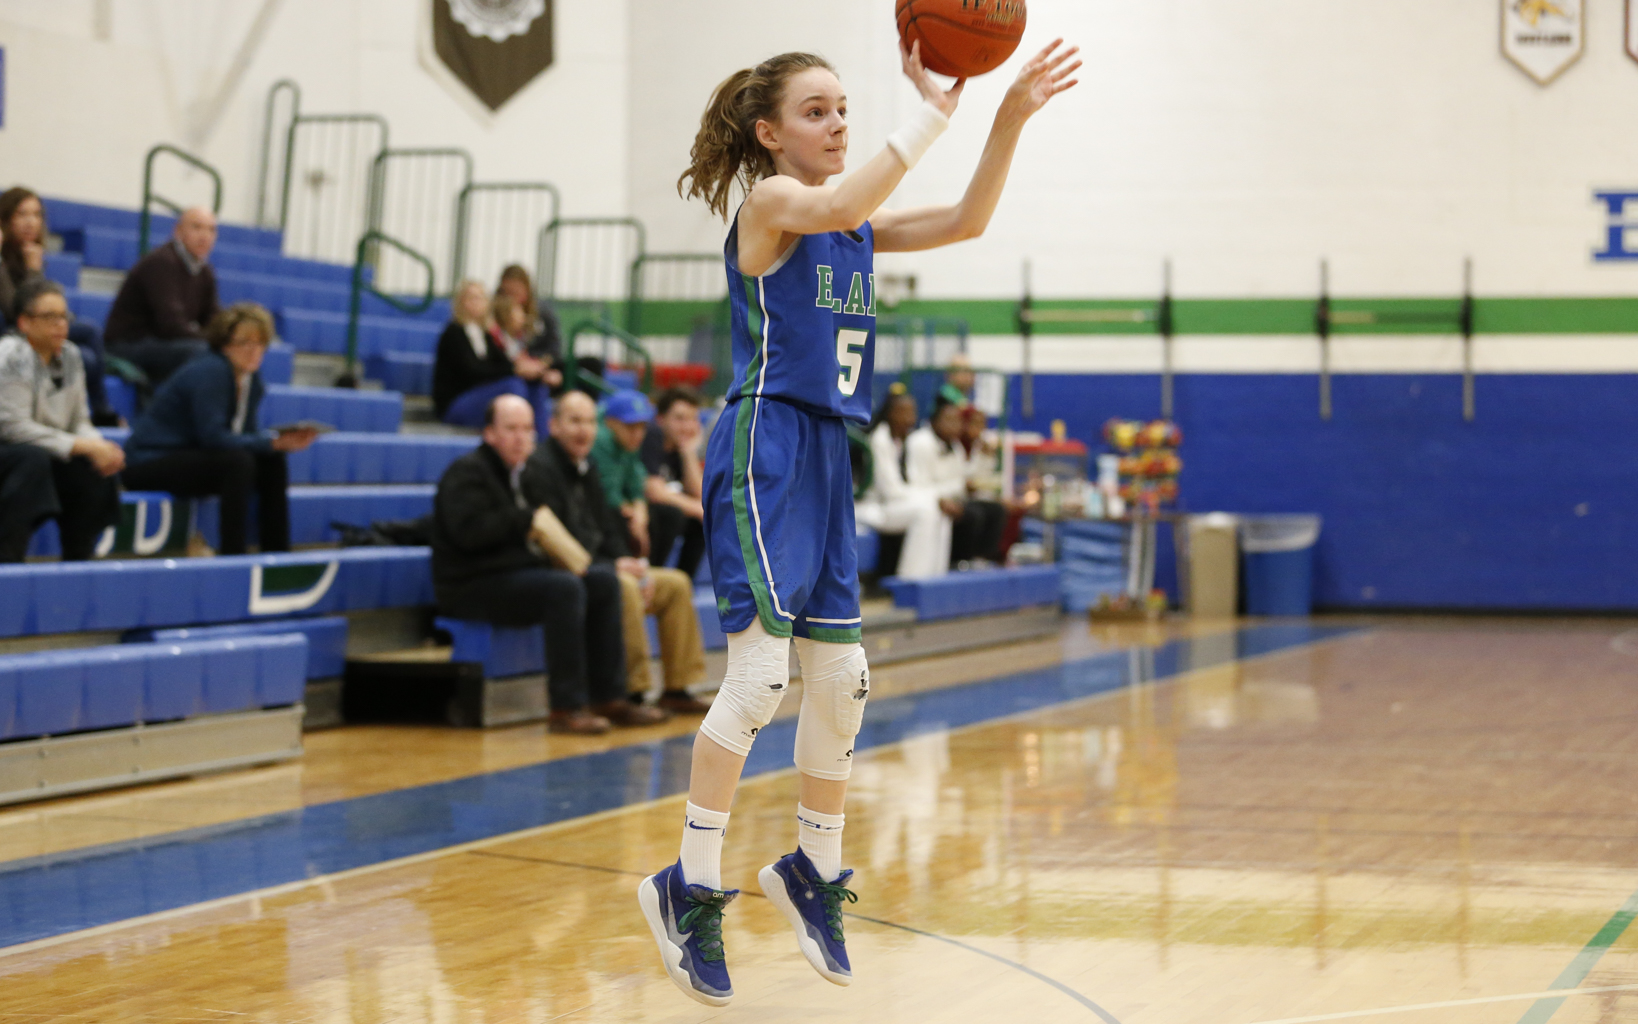 Blake seventh-grader Addison Mack (5) launches a three-pointer as part of her 23-point first half against St. Paul Academy Thursday night. Mack finished with a team-high 29 points in the Bears' 68-39 victory in Hopkins. Photo by Jeff Lawler, SportsEngine